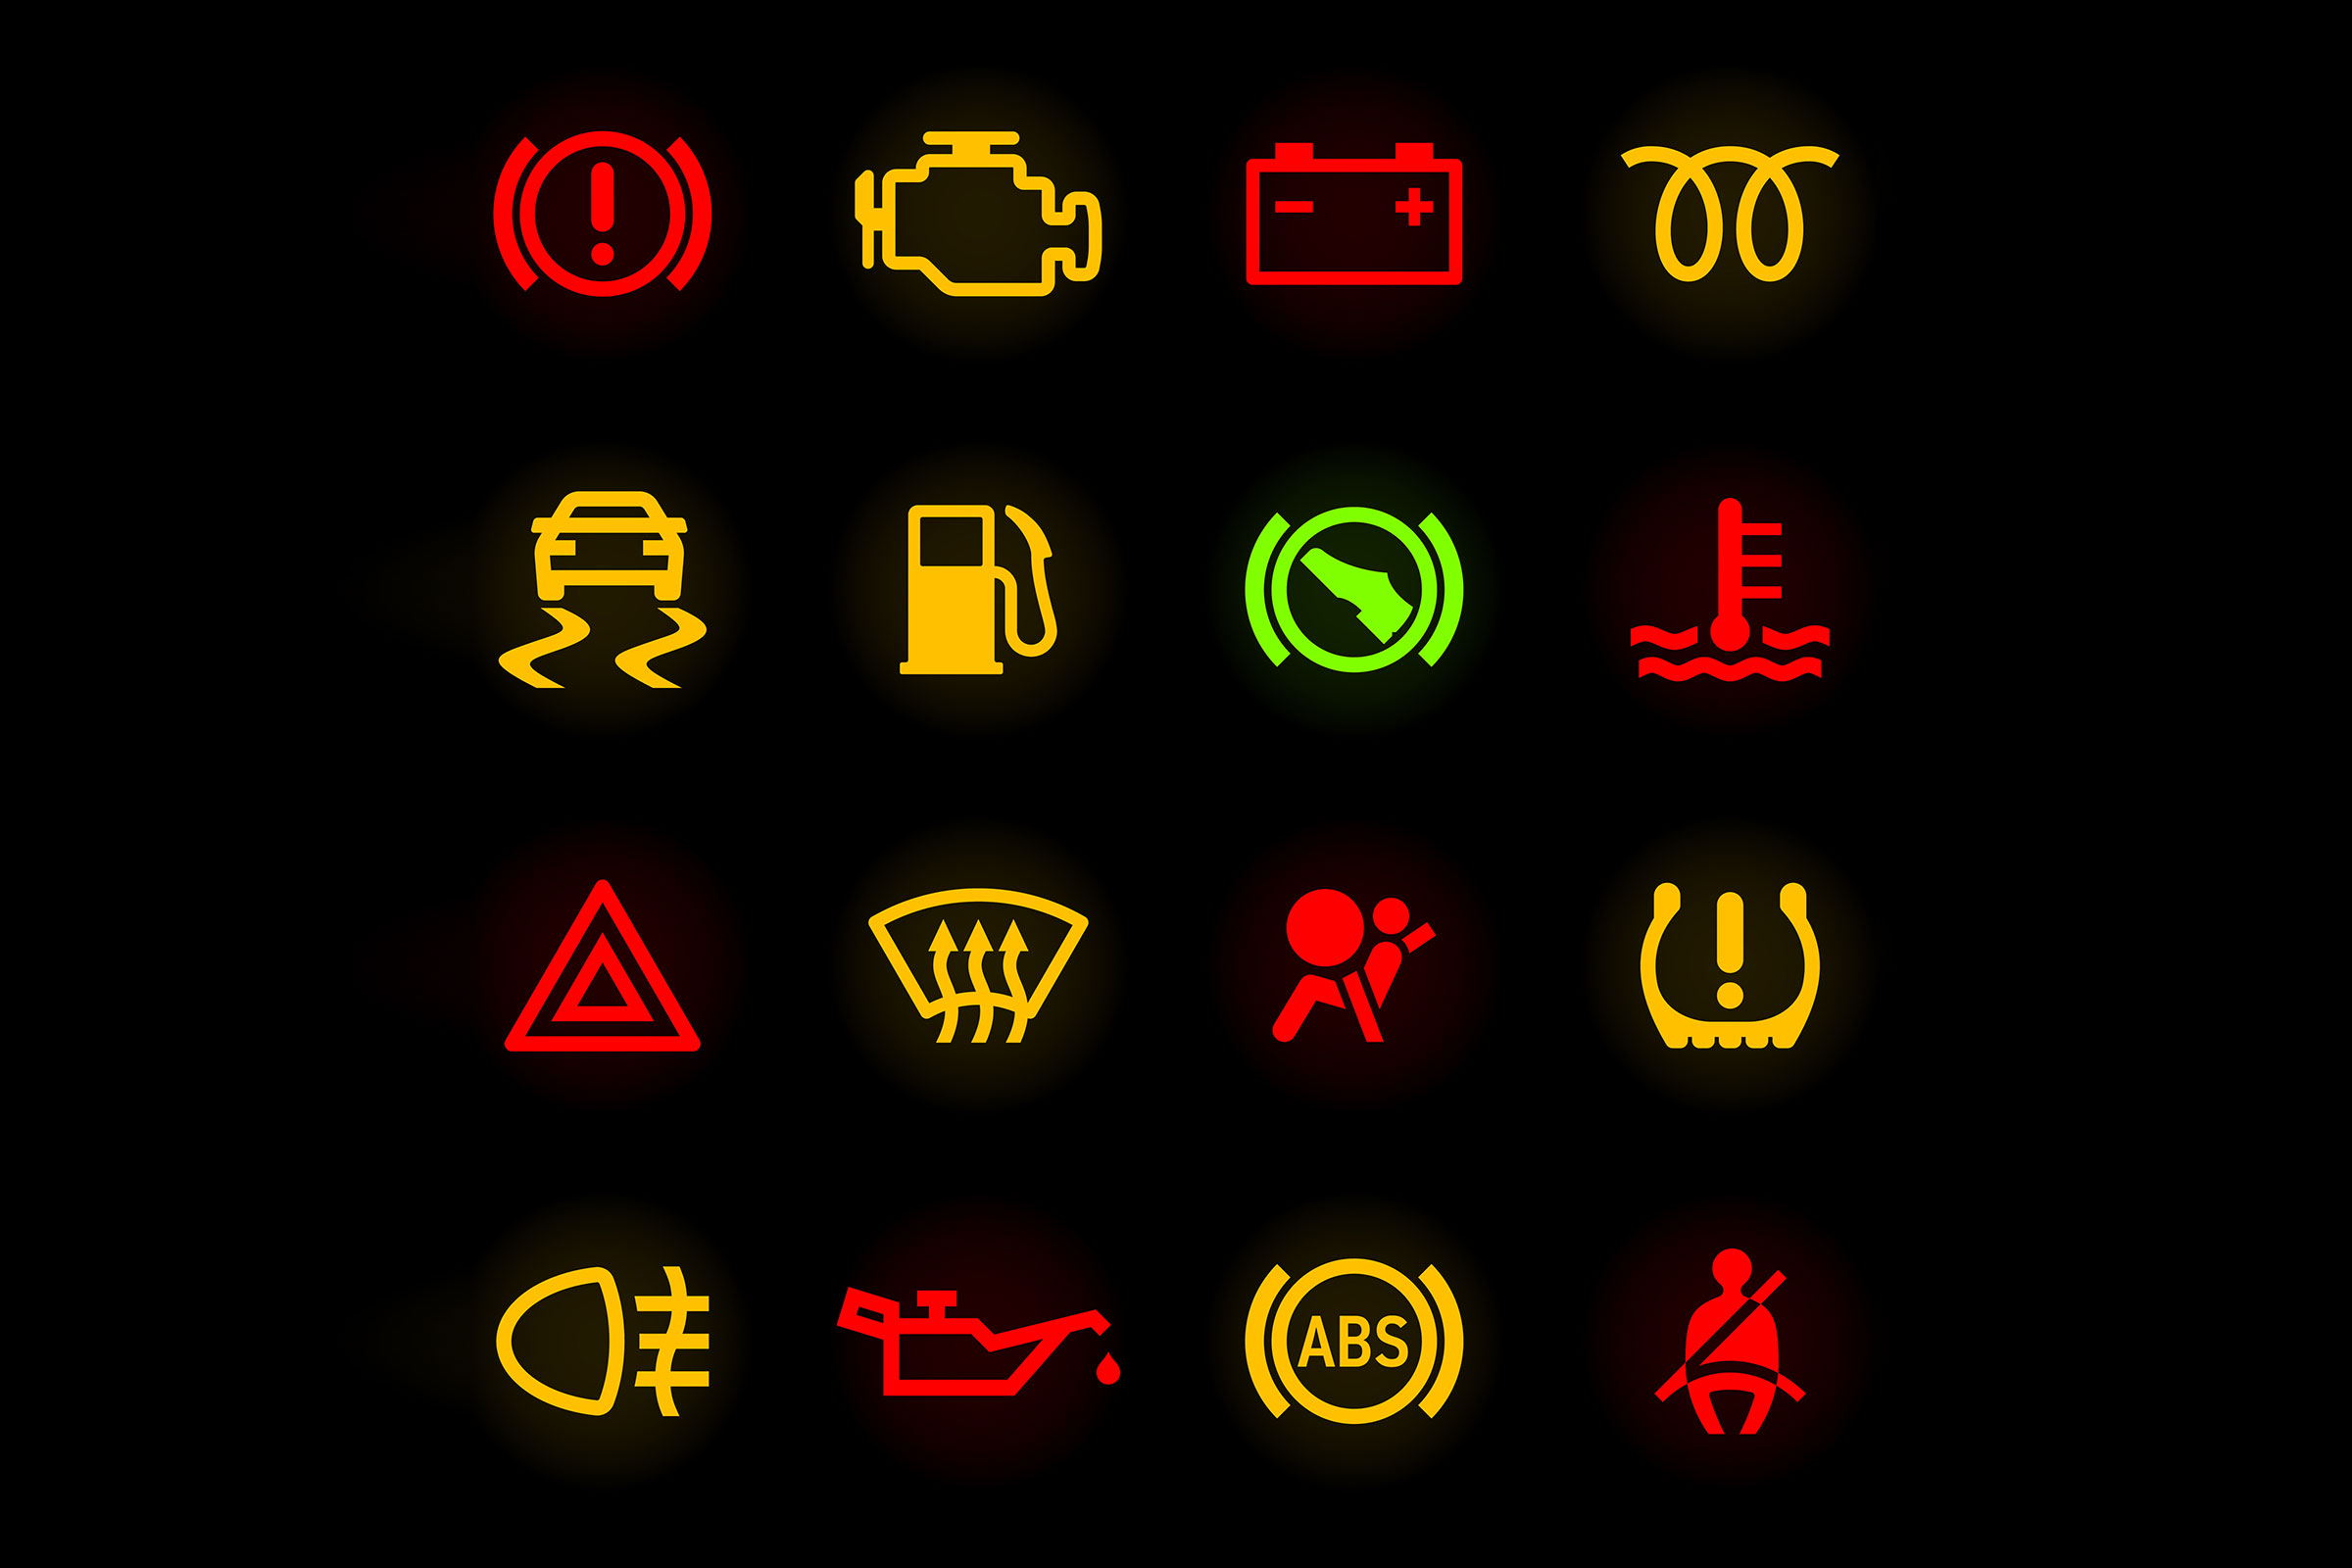 Dashboard Warning Lights Cropped